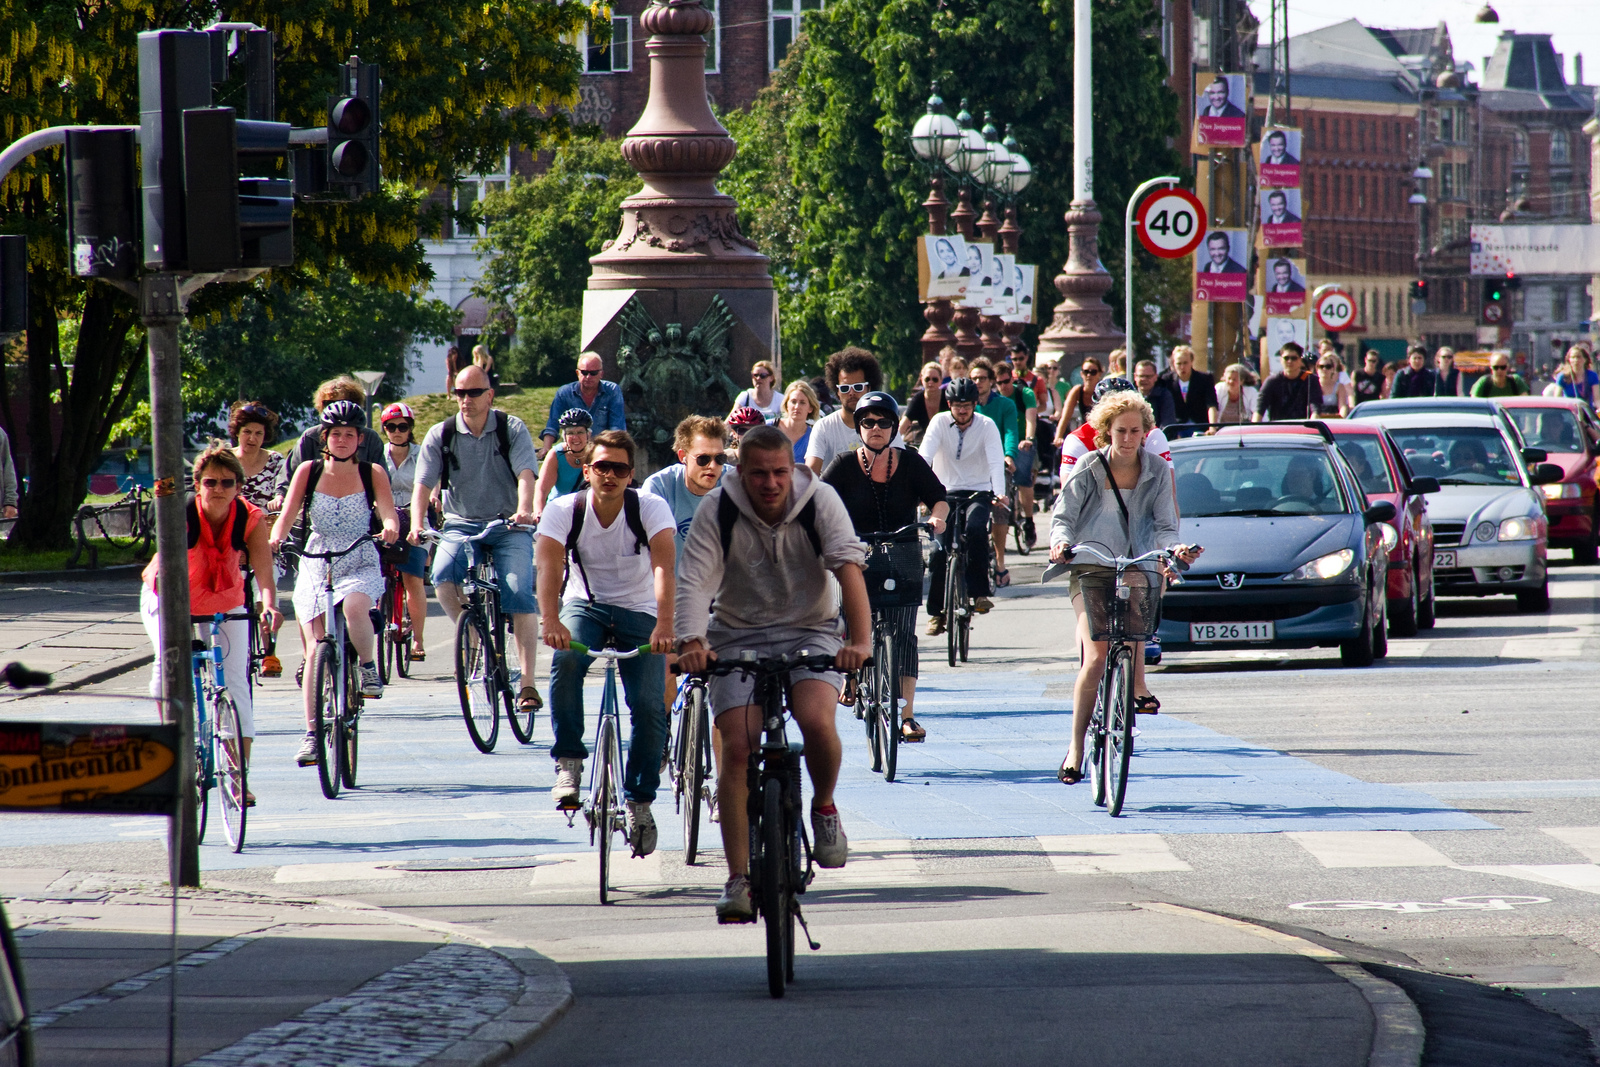 Discussion on this topic: To Cycle or Not to Cycle When , to-cycle-or-not-to-cycle-when/